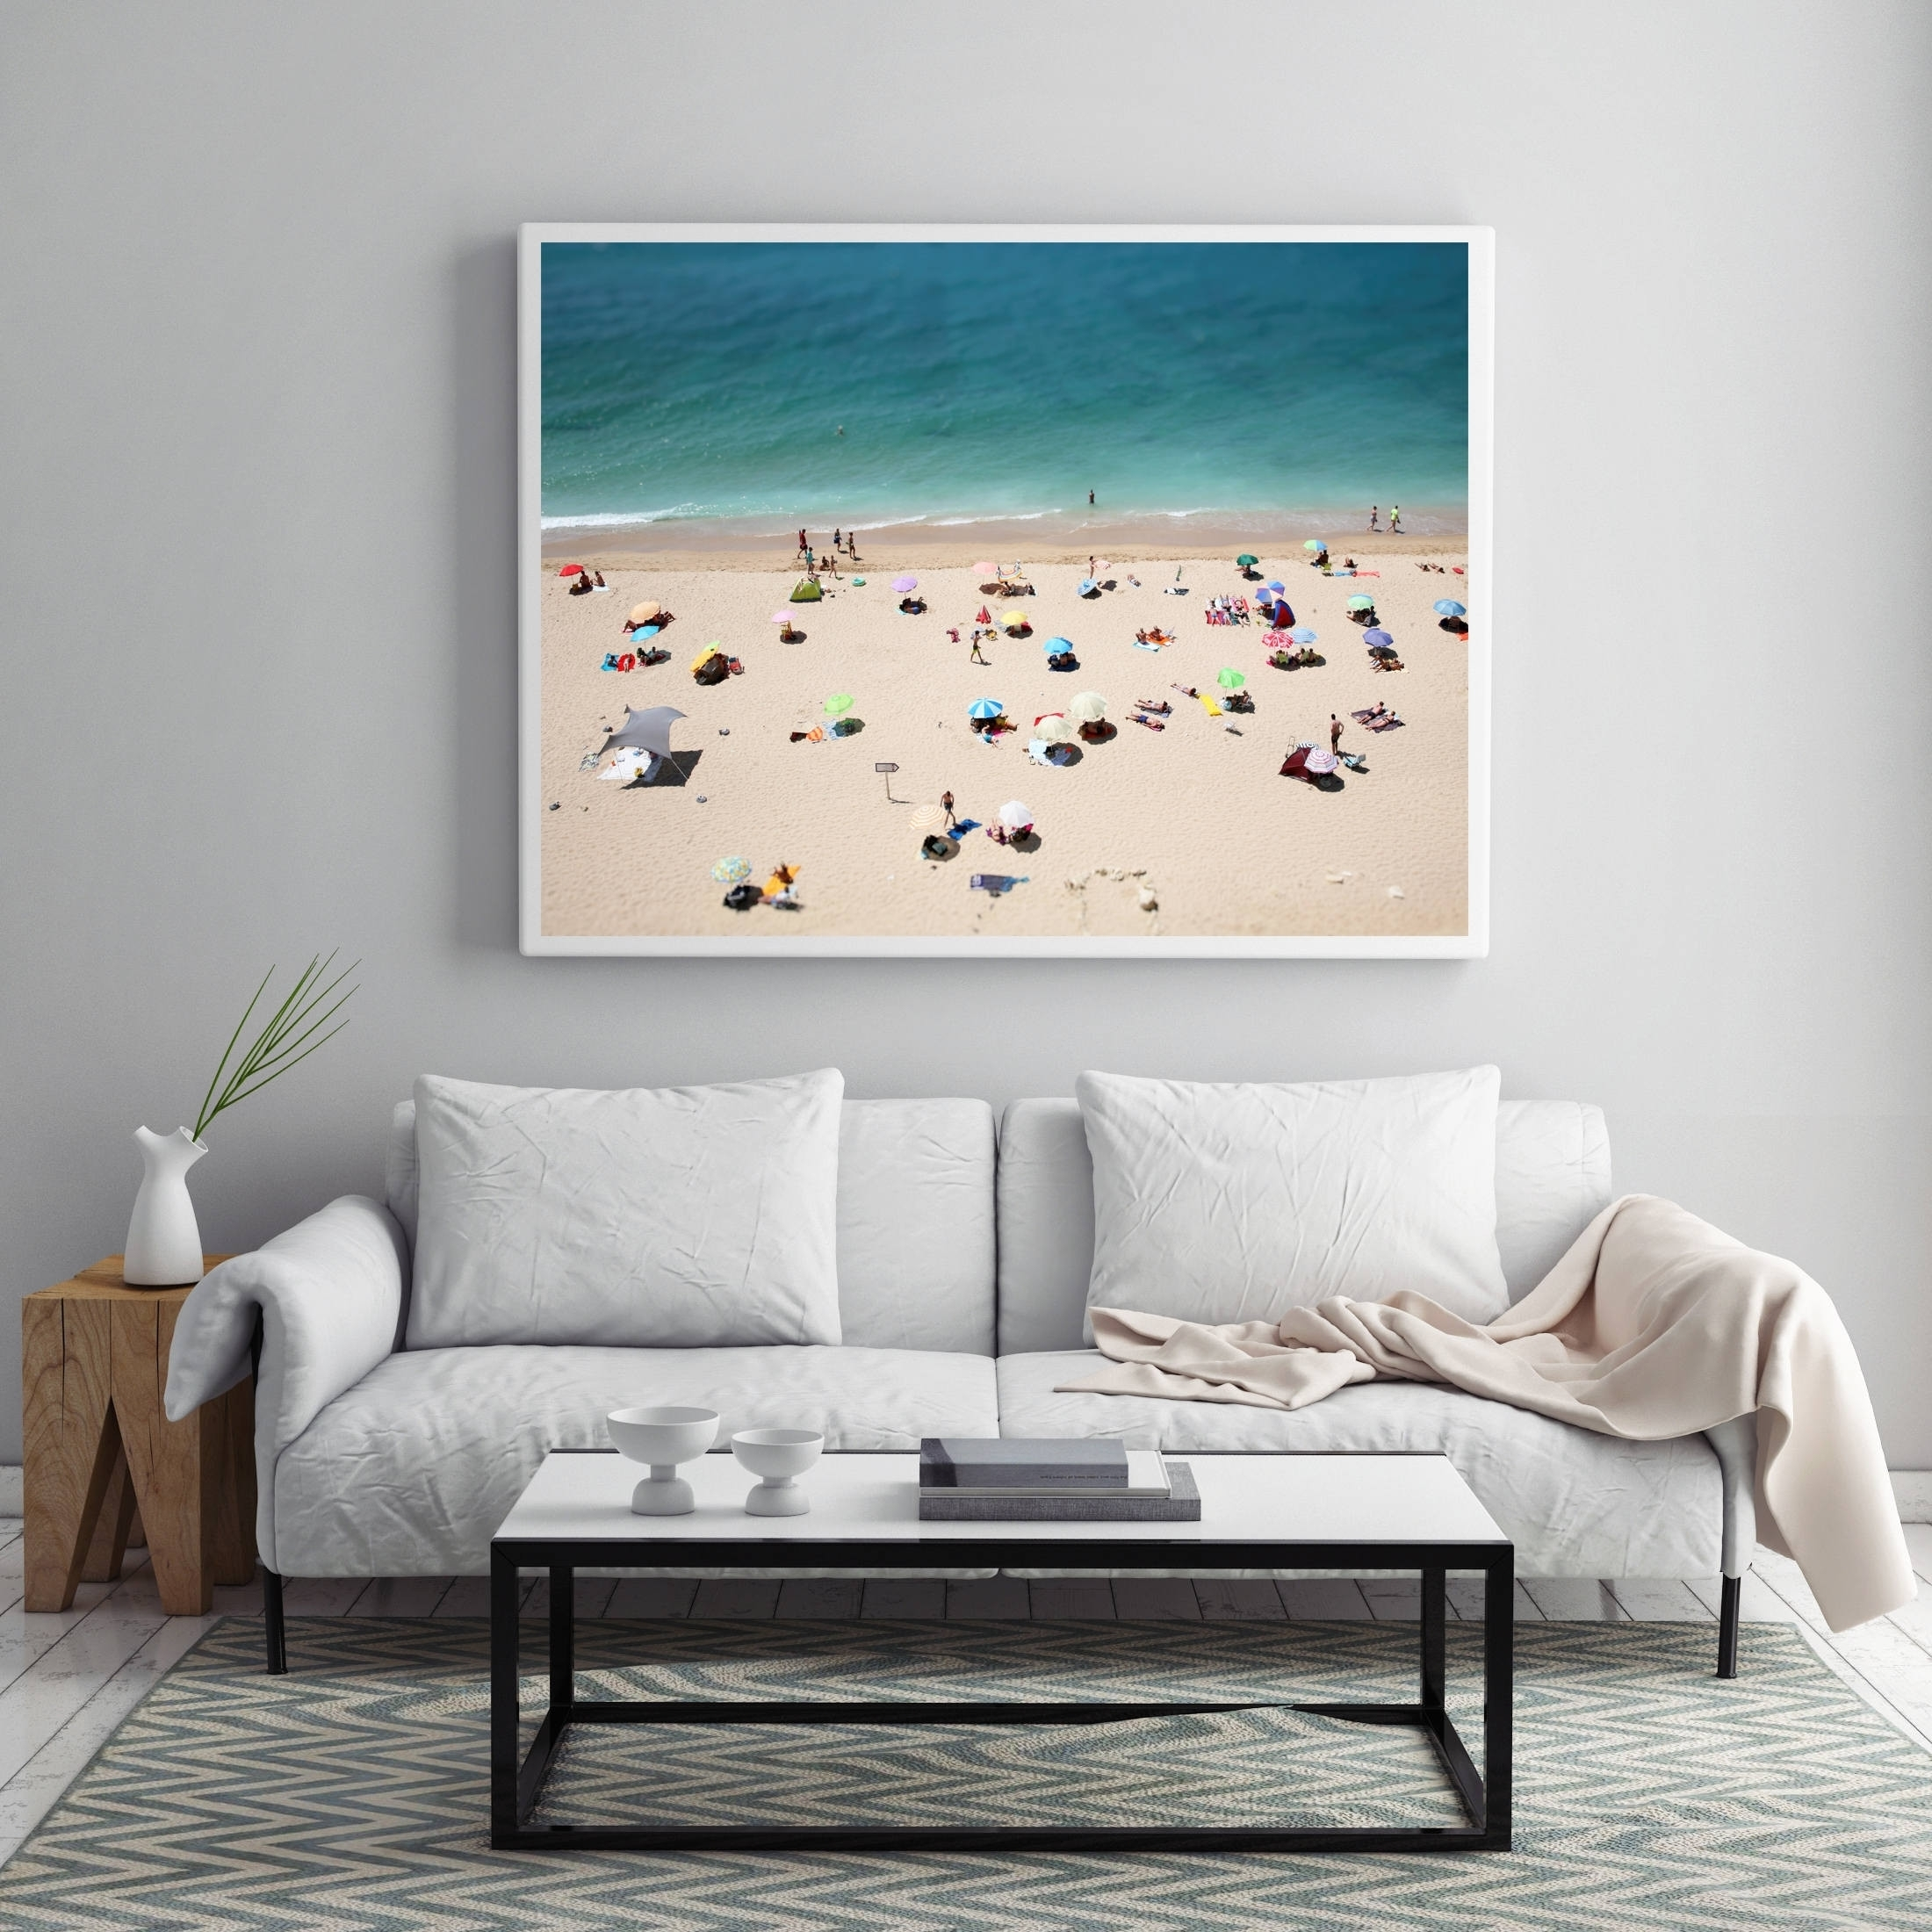 31 Best Of Large Coastal Wall Art | Wall Art Decorative Pertaining To 2017 Large Coastal Wall Art (Gallery 6 of 20)